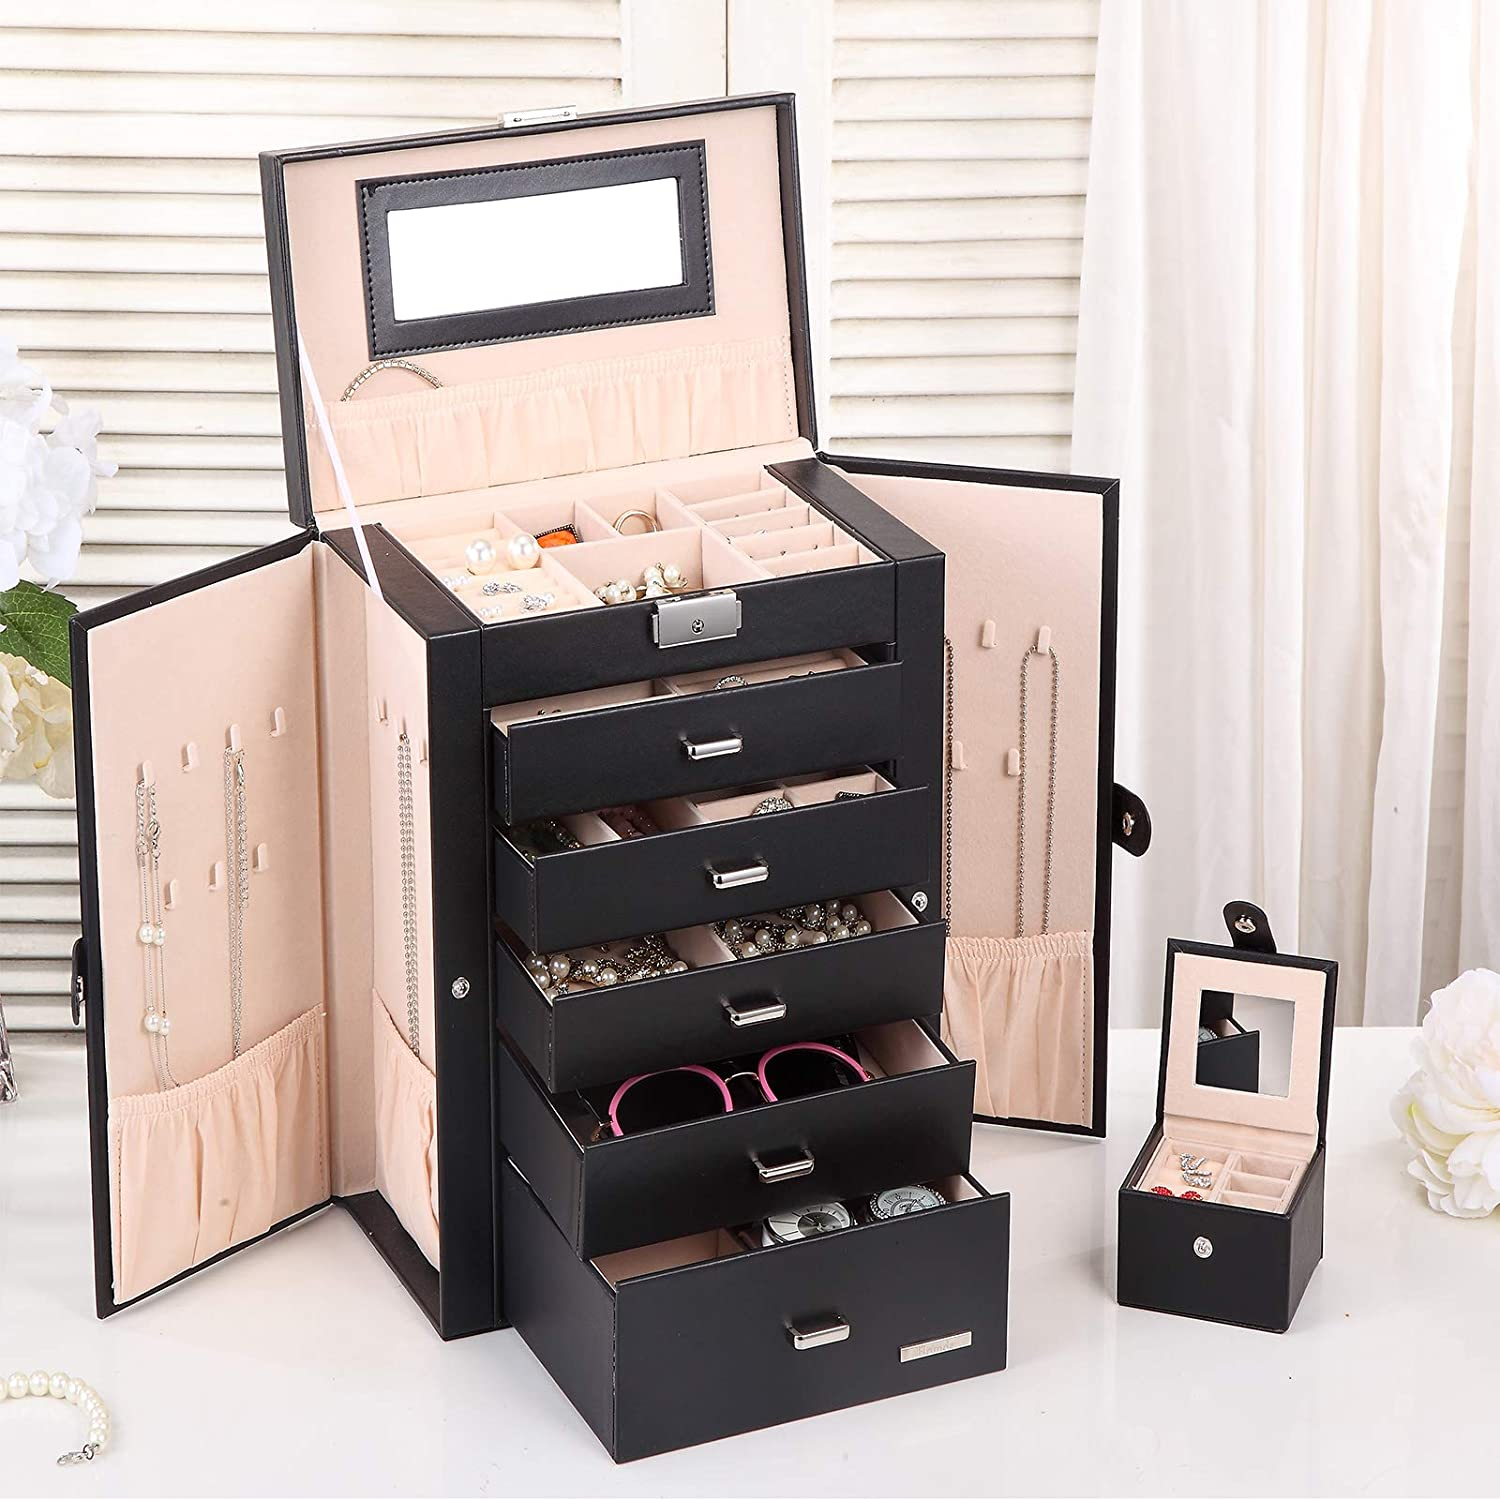 The most practical and useful gift for a woman over 40 has to be a jewelry box. It will contain all her jewelry in one place and she will never have to worry about looking for her jewelry as it will all be in one place. Gift it to her and see her face light up.